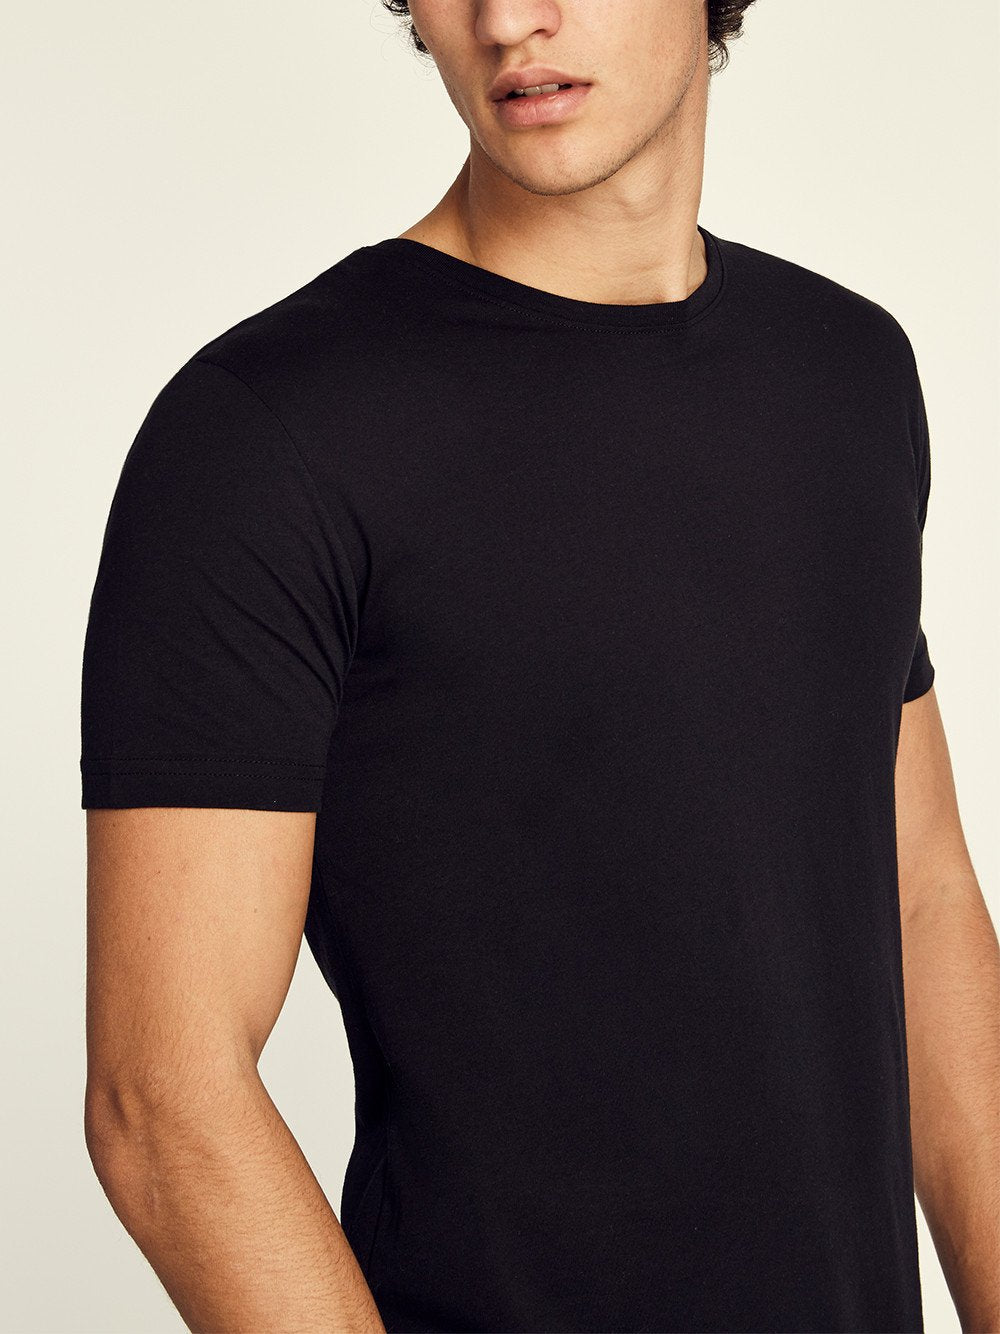 Pima Cotton Short Sleeve Crewneck T-shirt